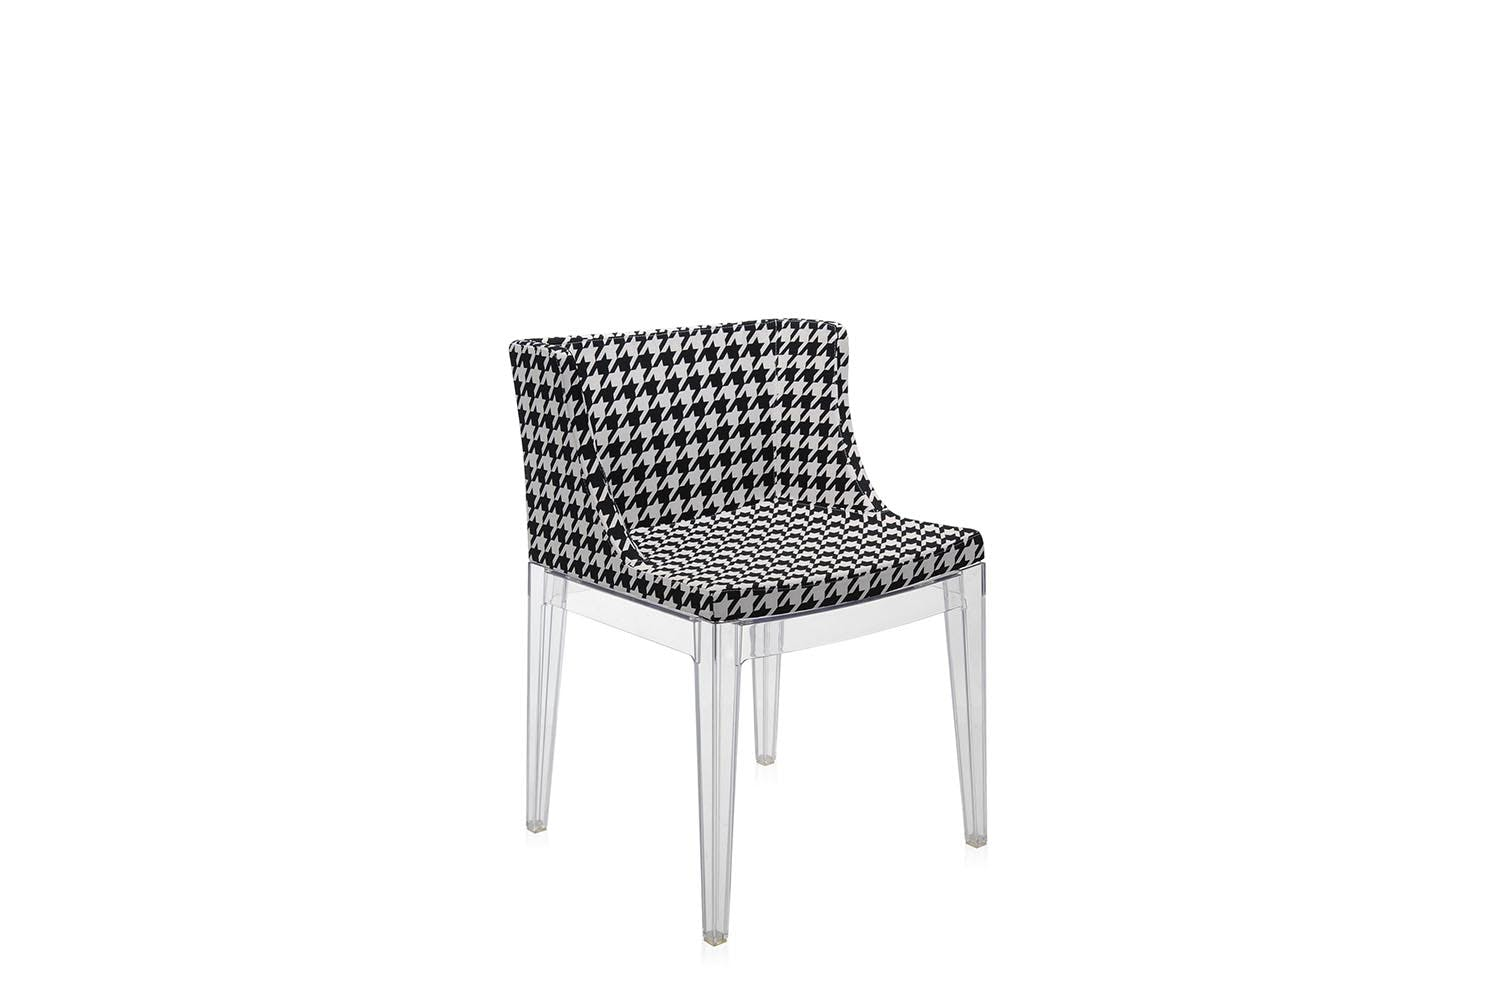 mademoiselle starck fabric chair by philippe starck for kartell